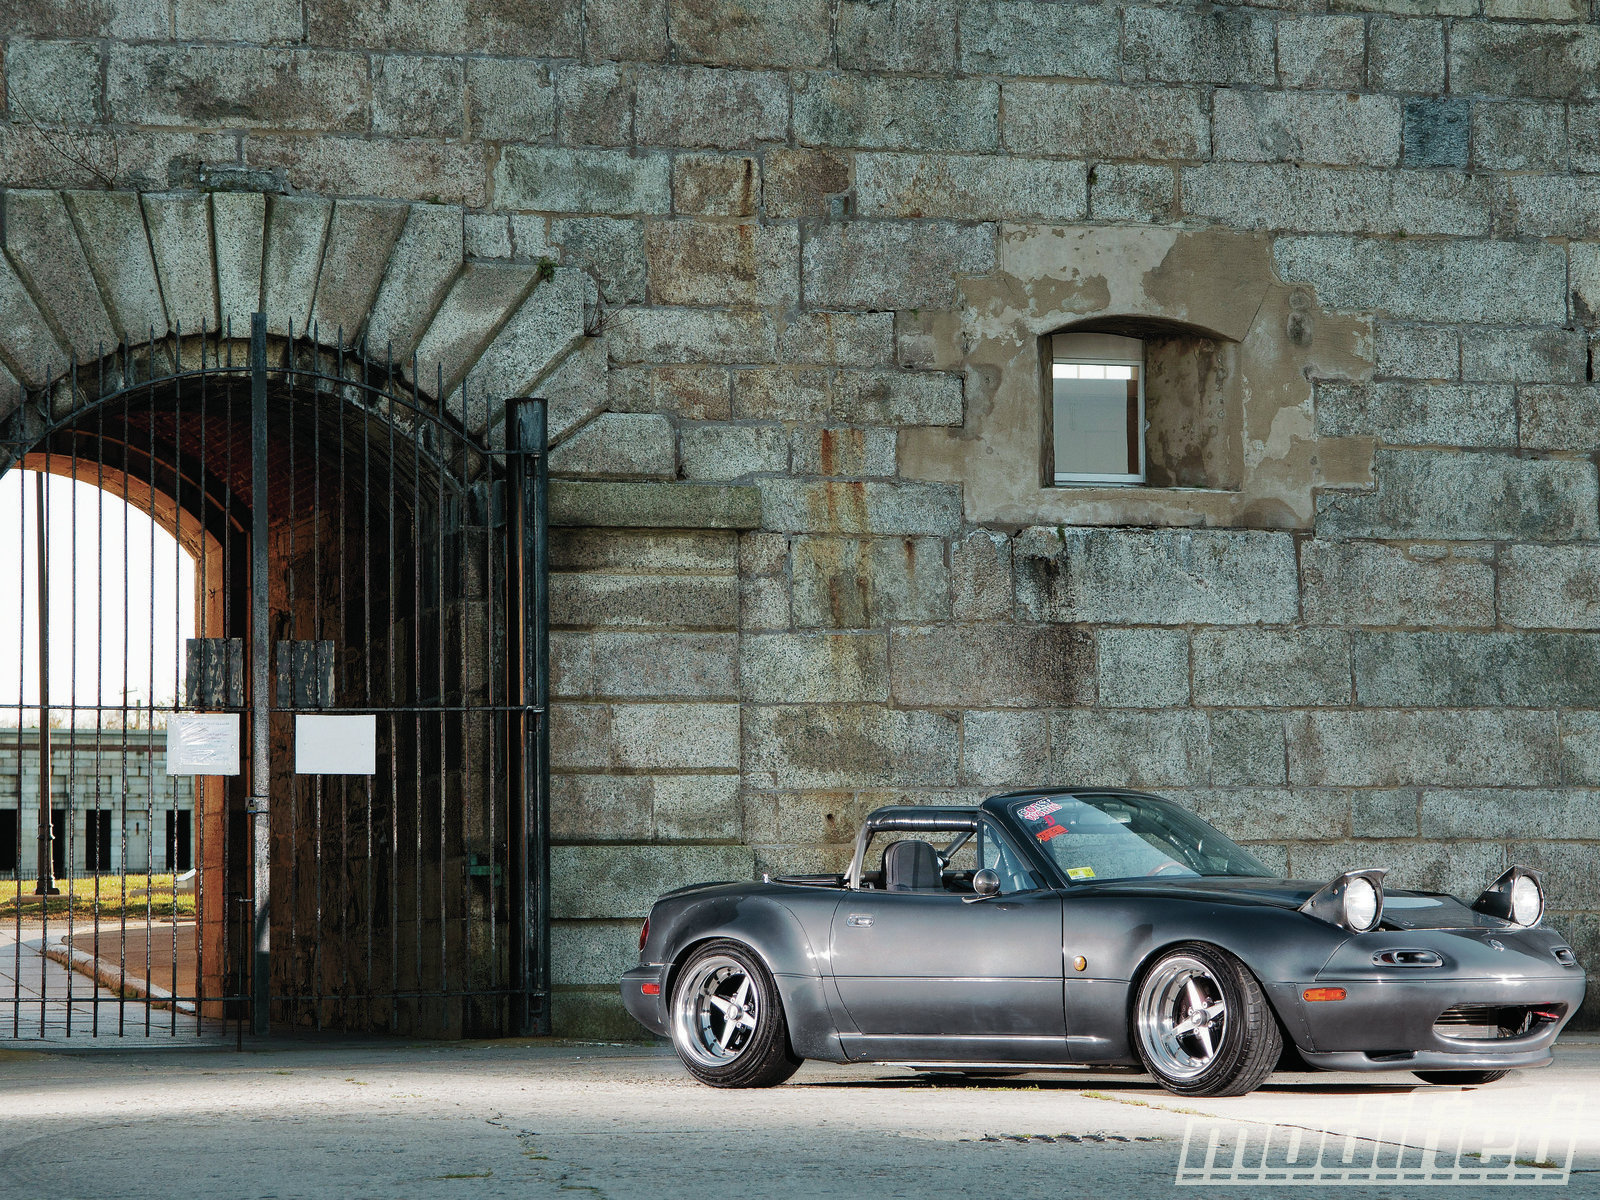 1990 Mazda MX5 Miata - Persistence Pays Off - Modified Magazine on